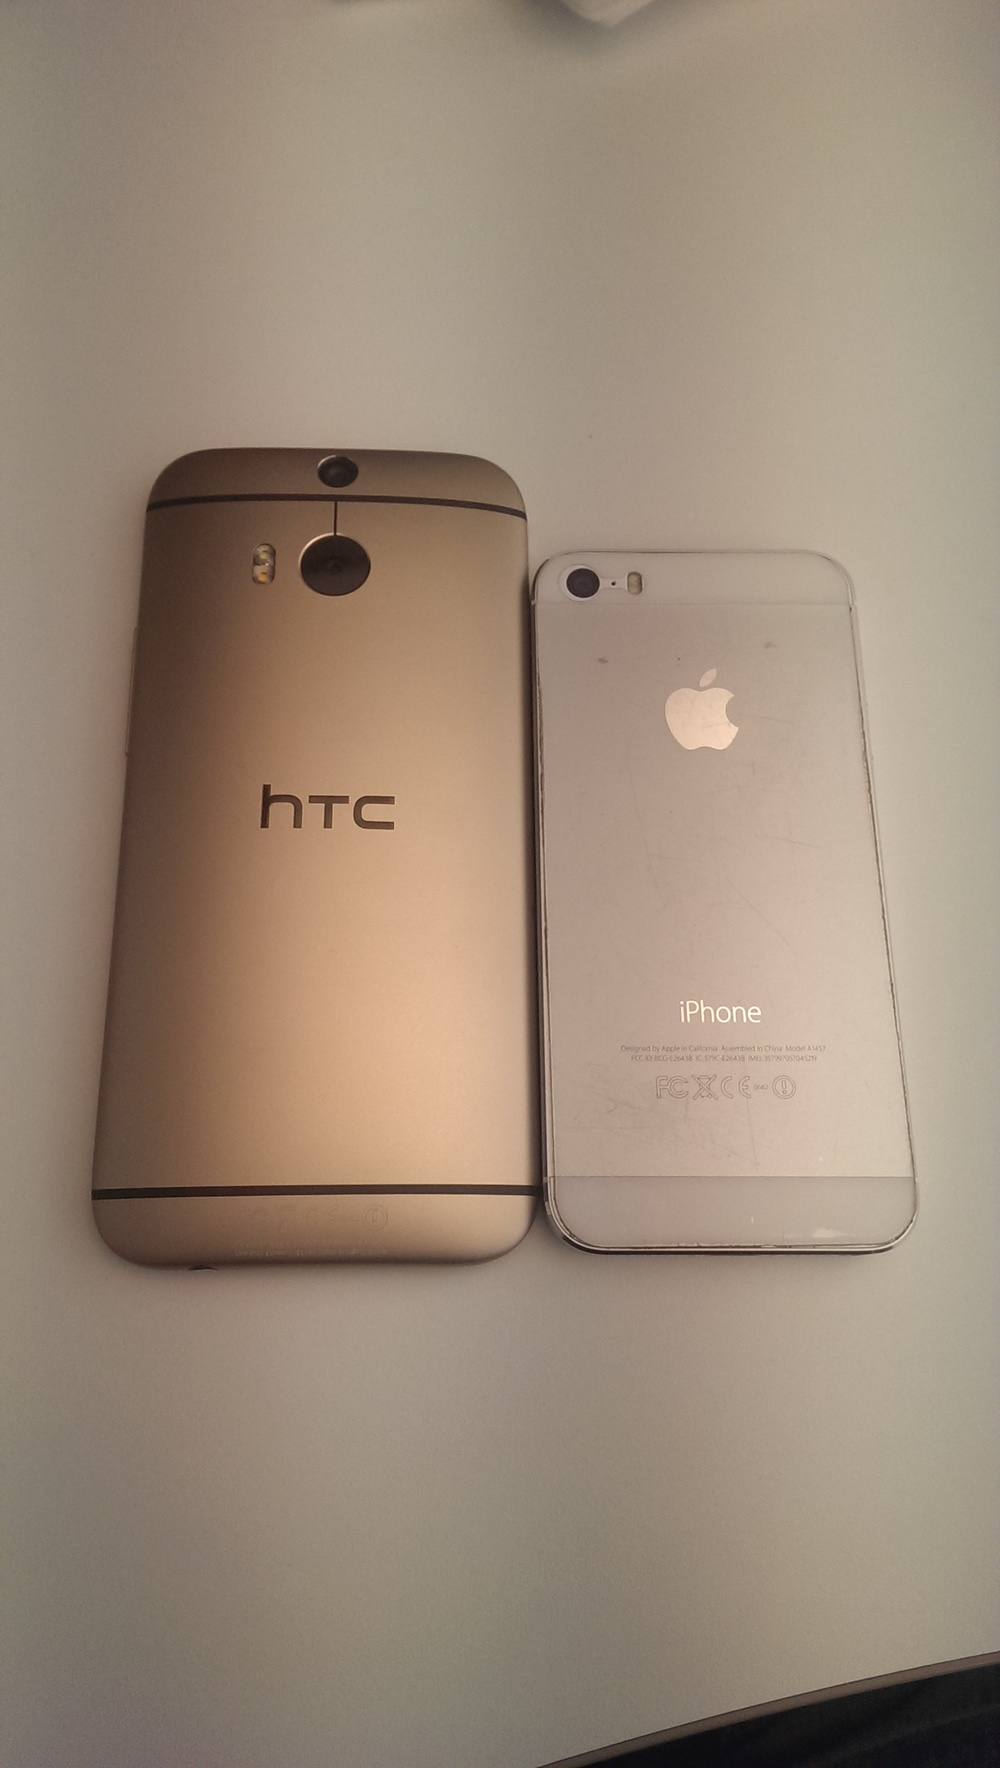 The gold HTC One M8 alongside the silver and white iPhone 5s